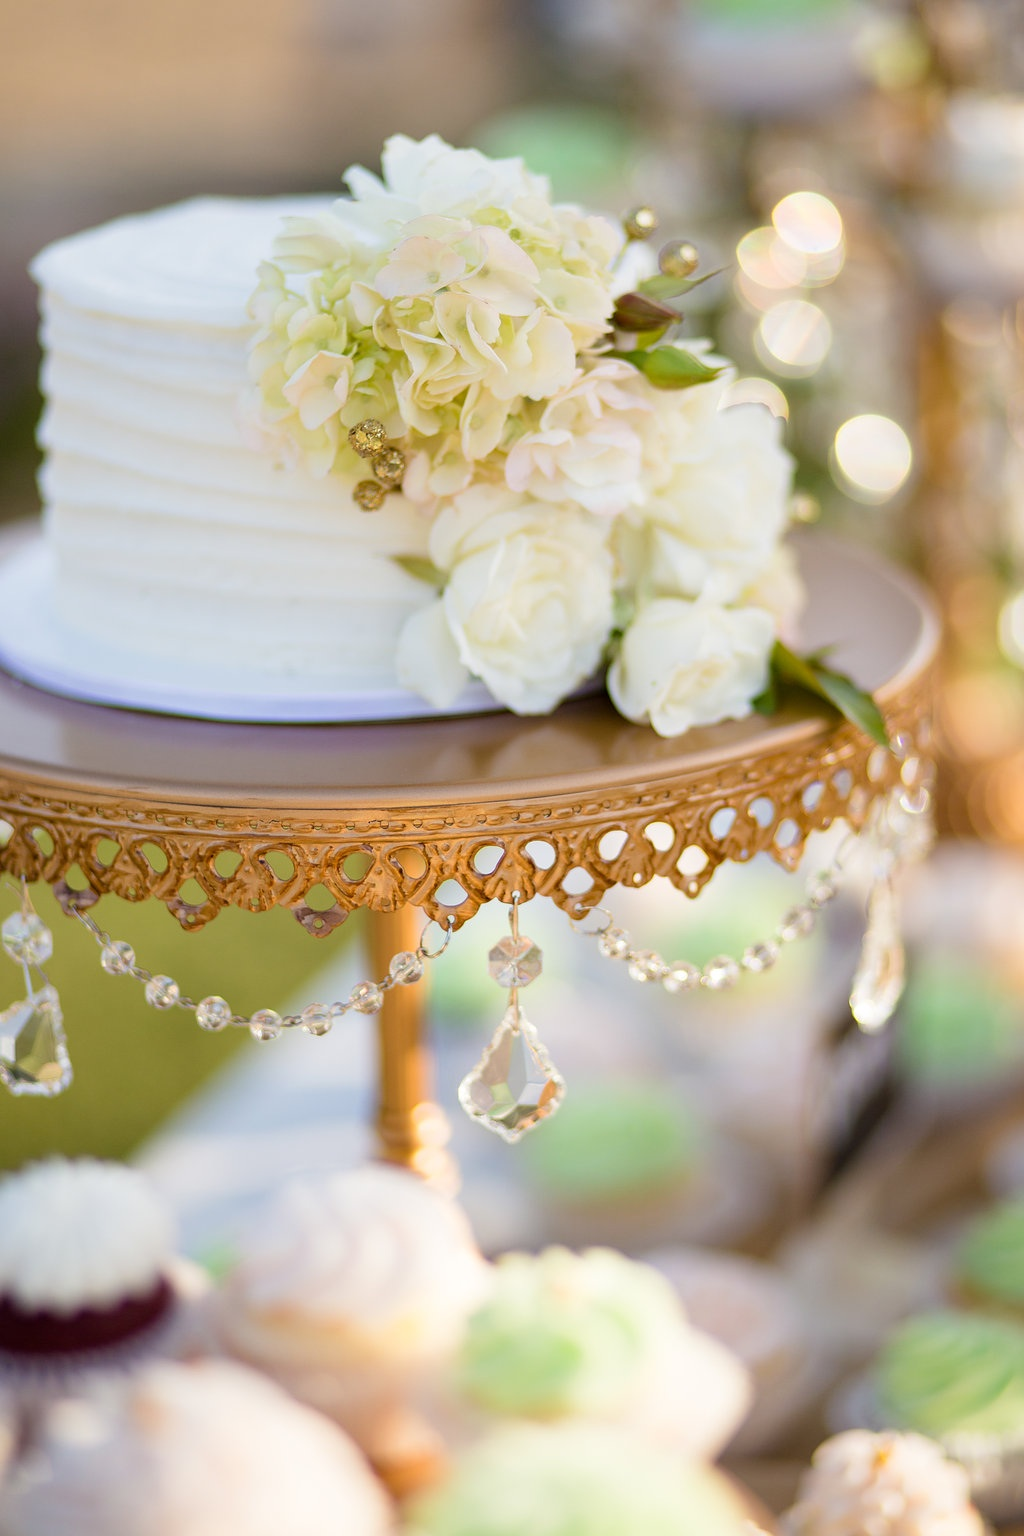 antique gold chandelier cake stand by opulnet treasures wedding cake by frostitcakery .jpg